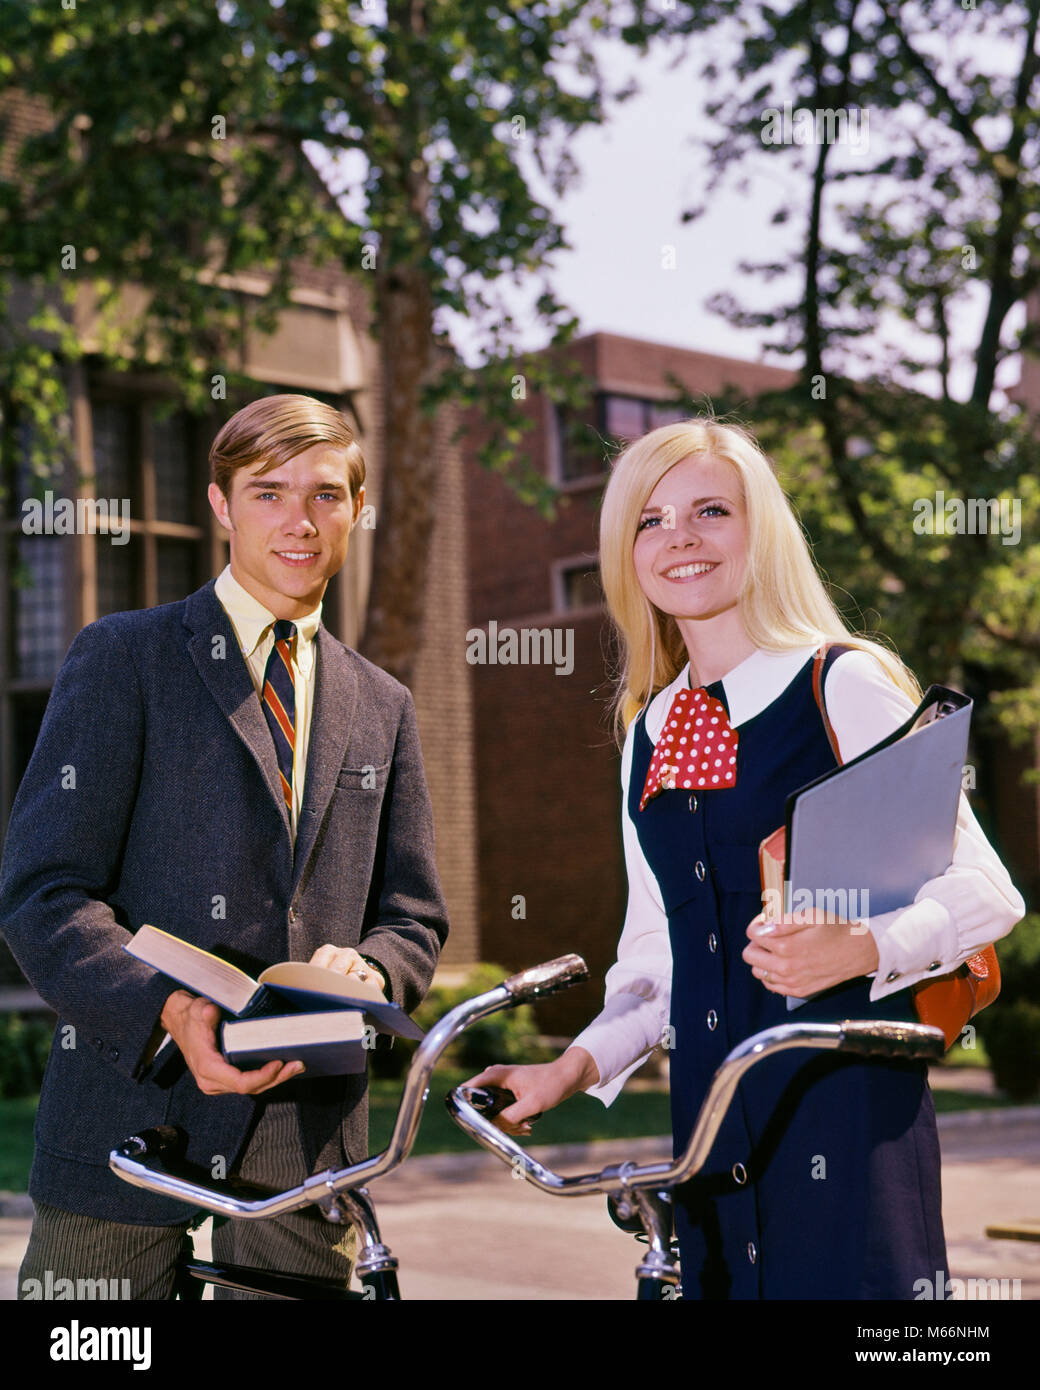 1960s PORTRAIT STUDENT COUPLE ON CAMPUS WITH BIKES AND BOOKS LOOKING AT CAMERA - ks5841 HAR001 HARS JOY LIFESTYLE - Stock Image